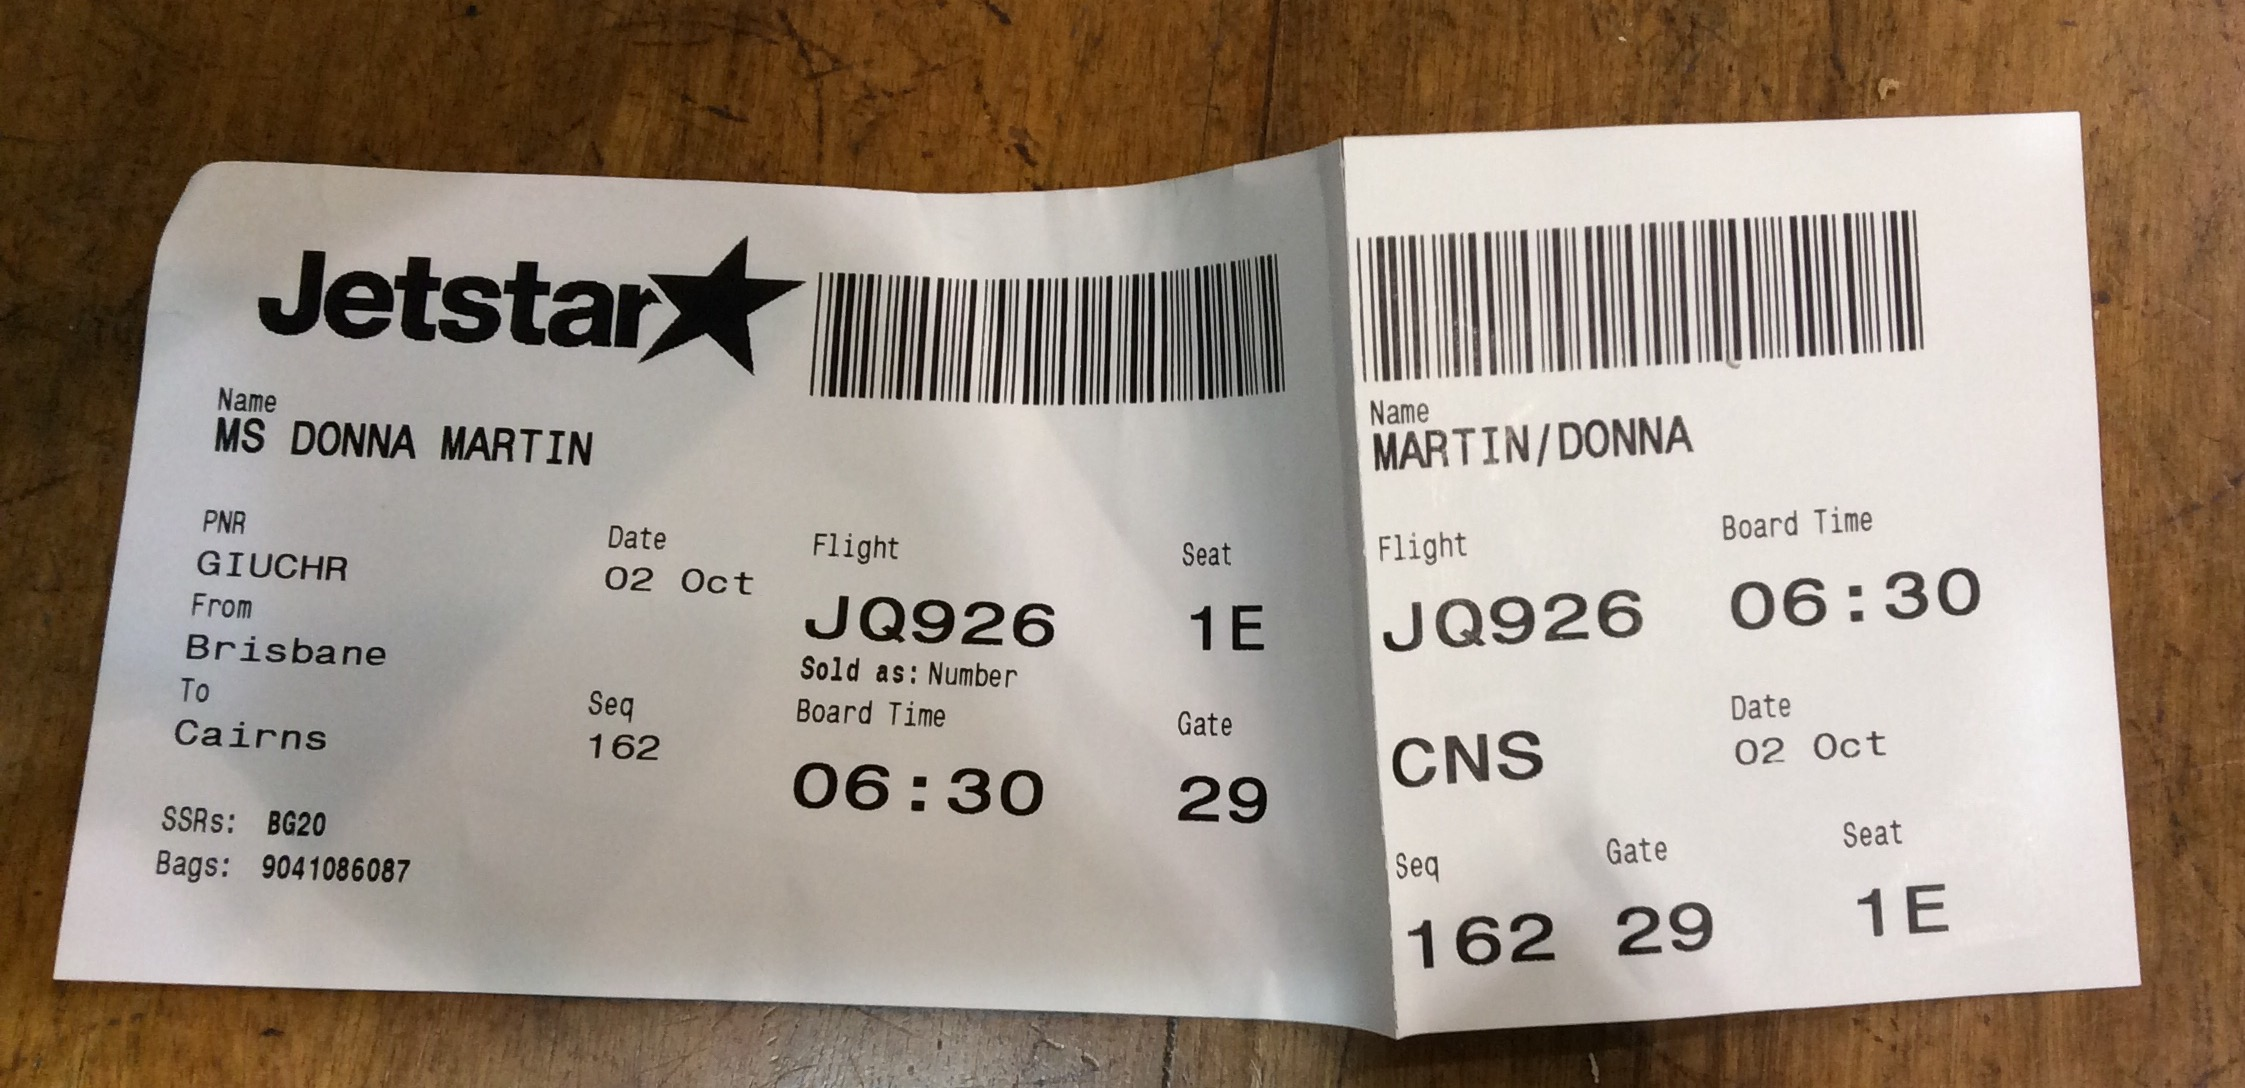 Jetstar Experience – Brisbane to Cairns